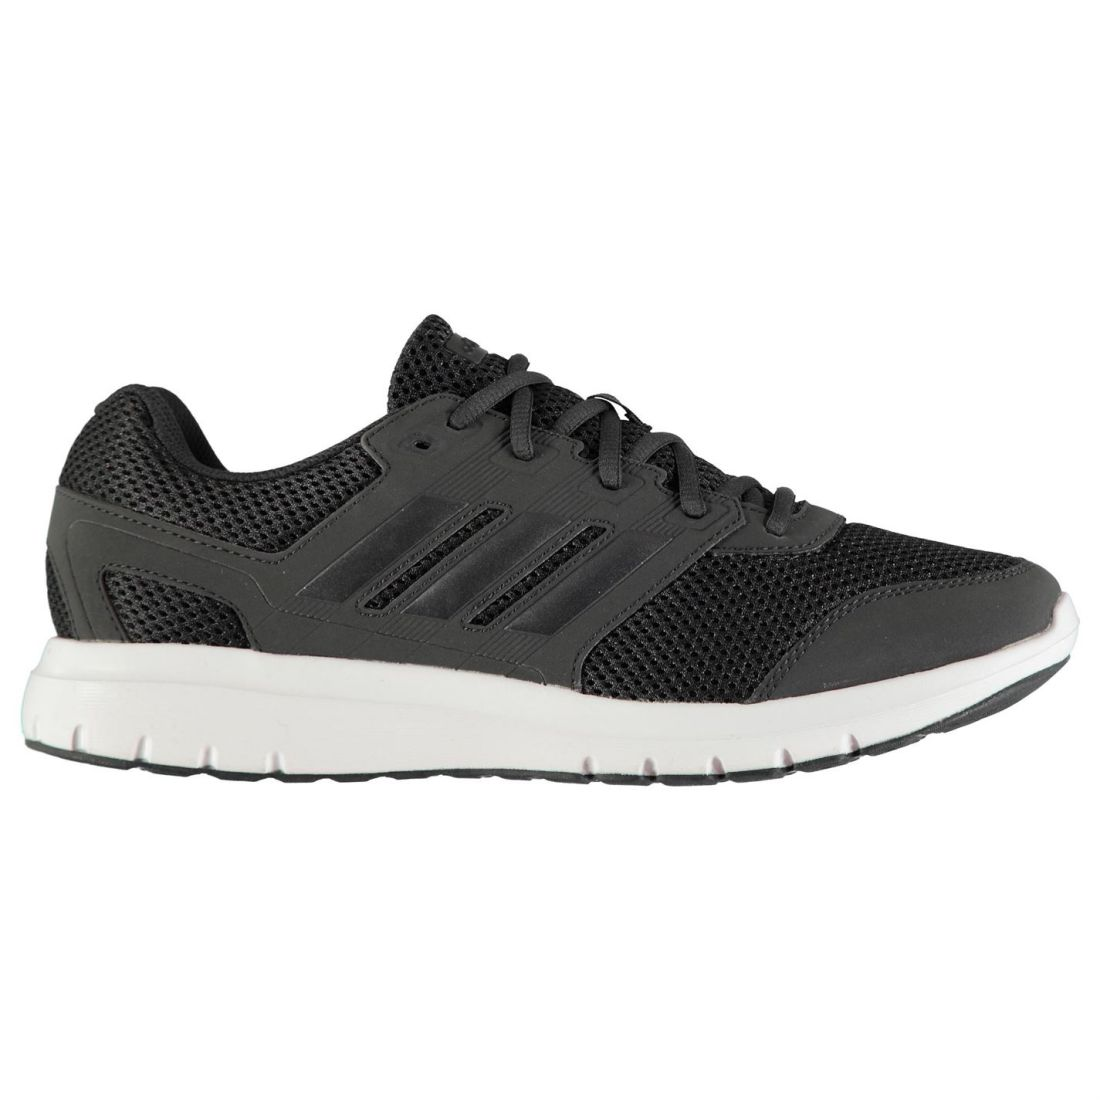 newest 7d7d1 7c0dd adidas Duramo Lite 2 Sneakers Mens Gents Runners Laces Fastened Ventilated  Mesh 5 5 sur 5 Voir Plus